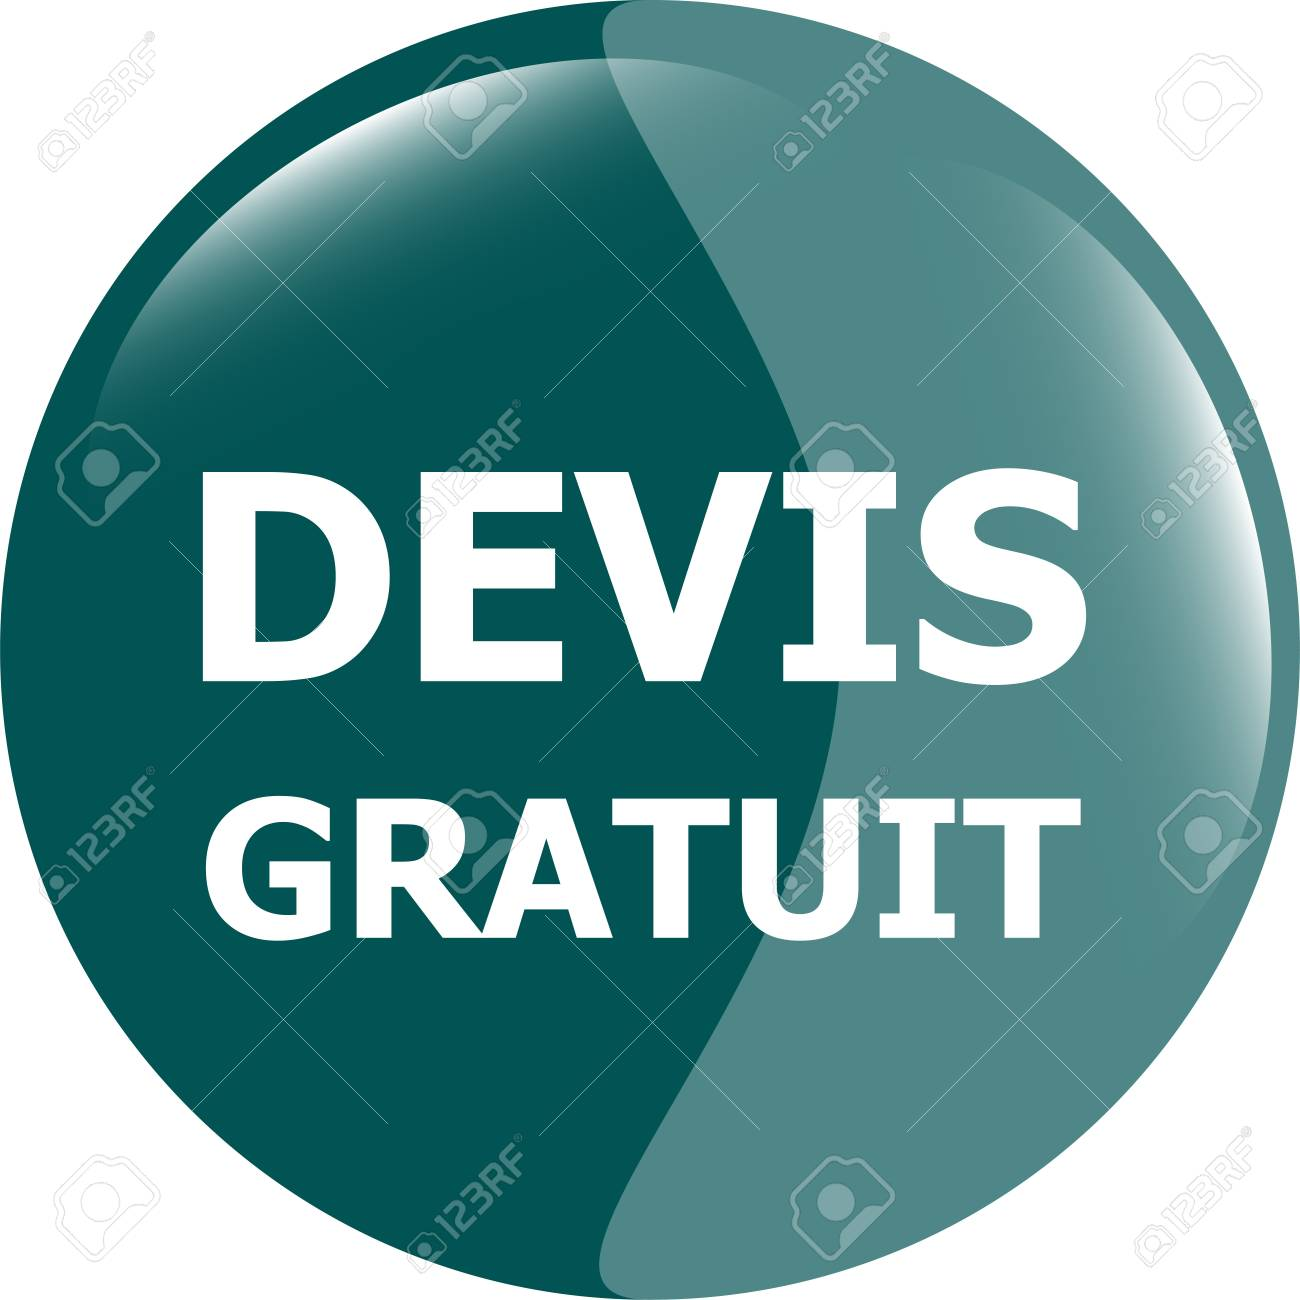 123Rf Gratuit devis gratuit, free quote glossy green button stock photo, picture